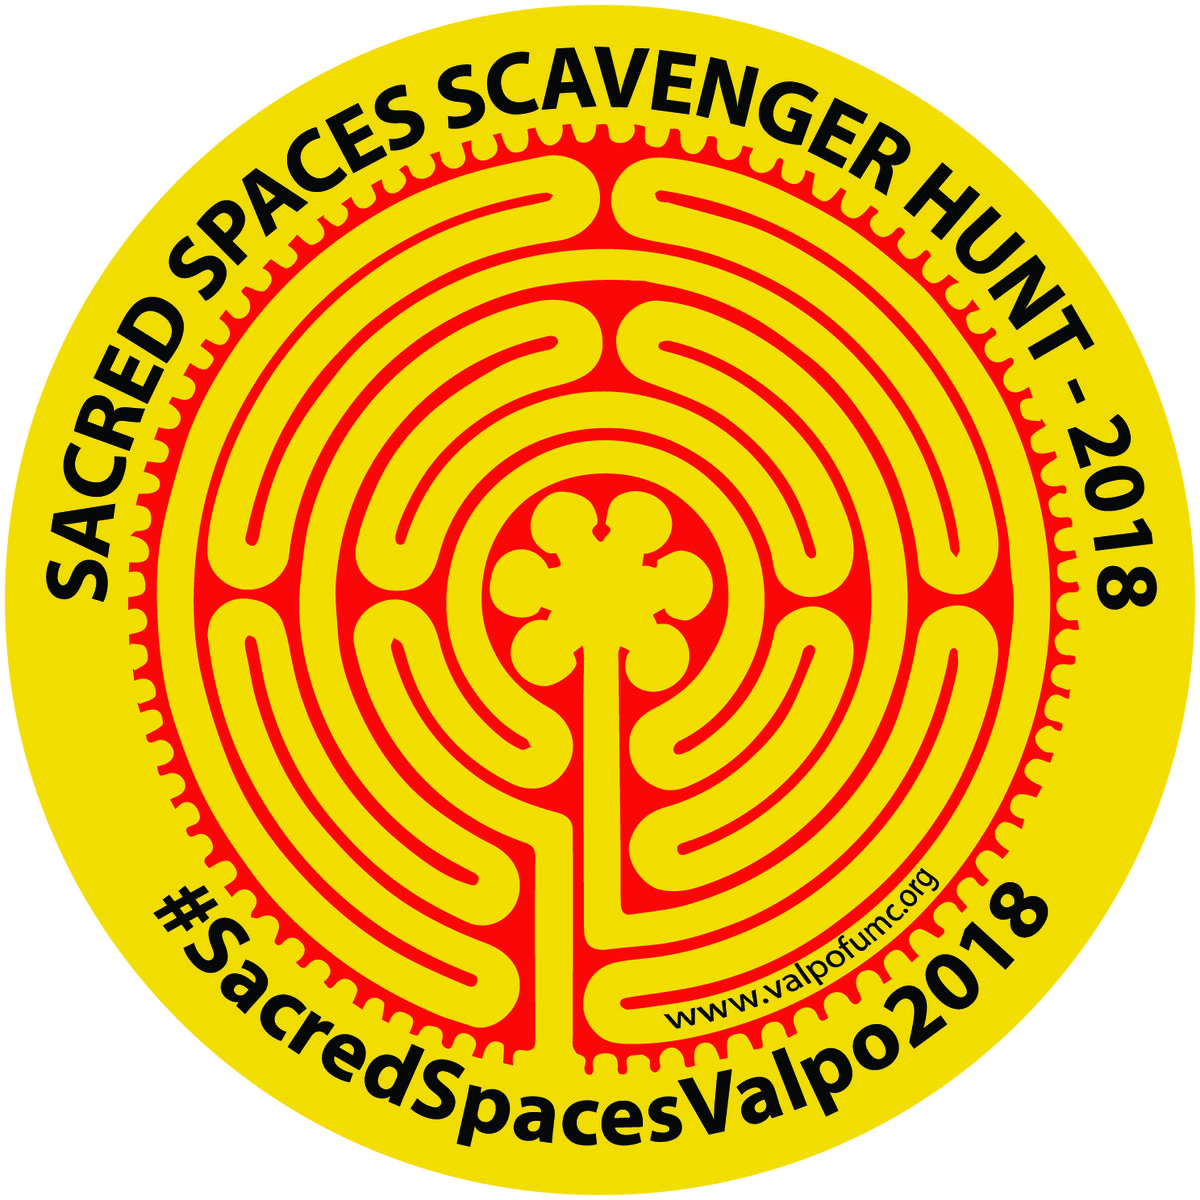 Sacred_Spaces_Valpo_Scavenger_Hunt_2018_-1